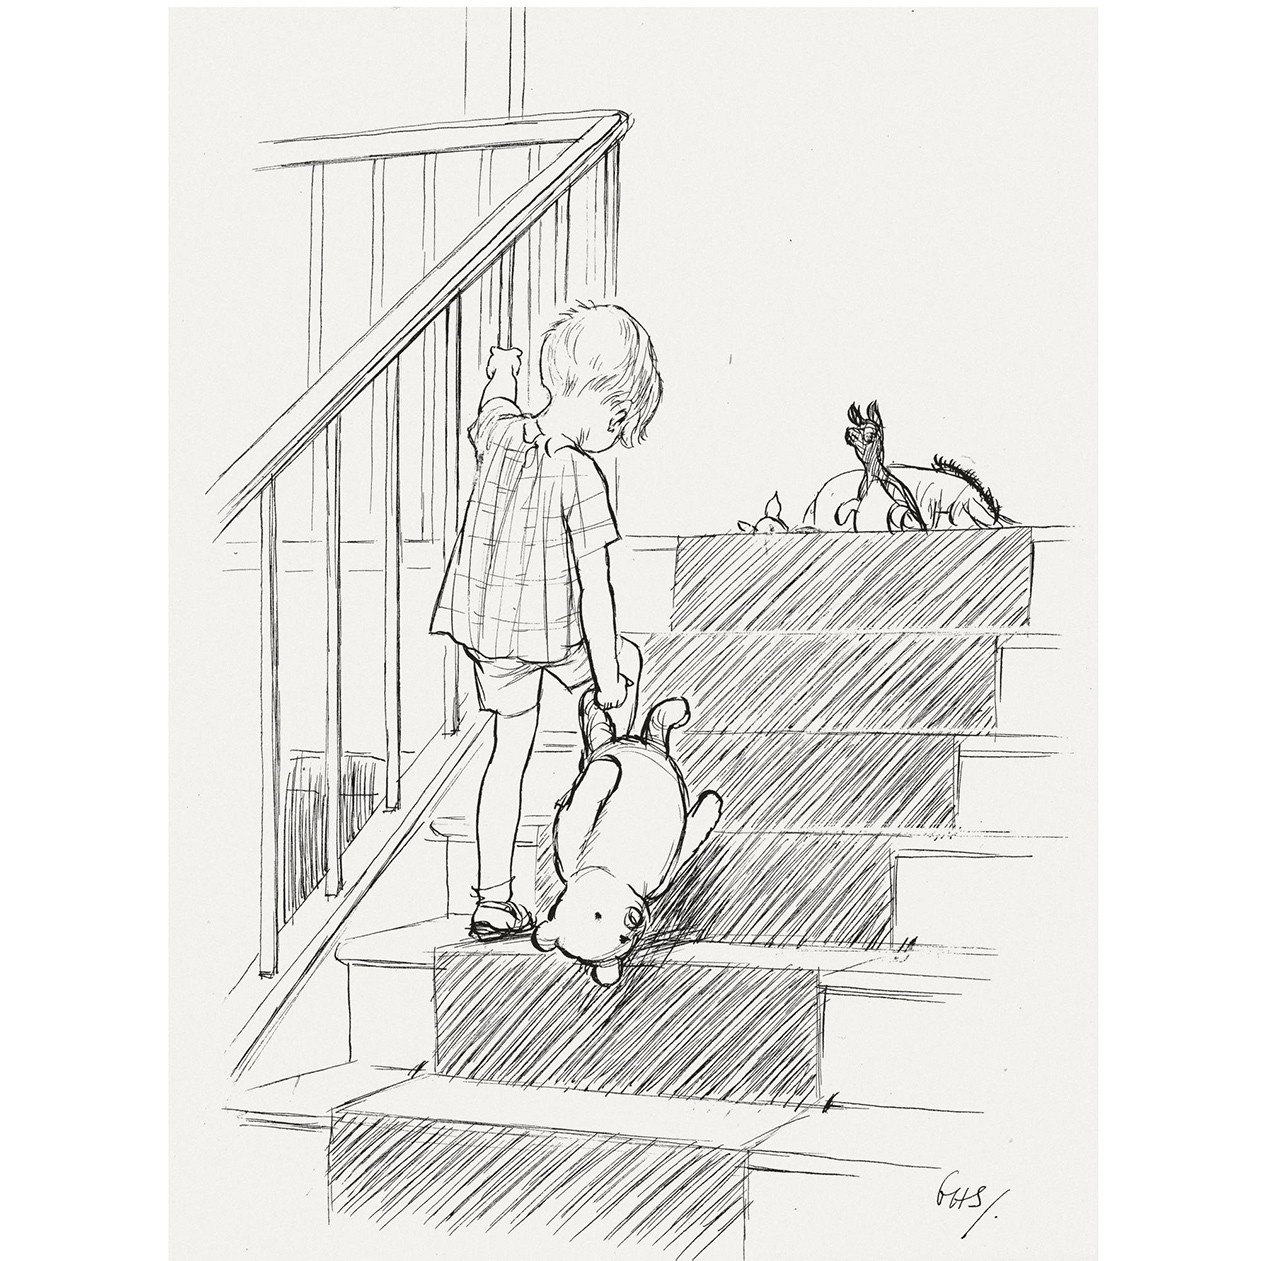 Christopher Robin and Pooh heading upstairs, illustration by E.H, Shepard